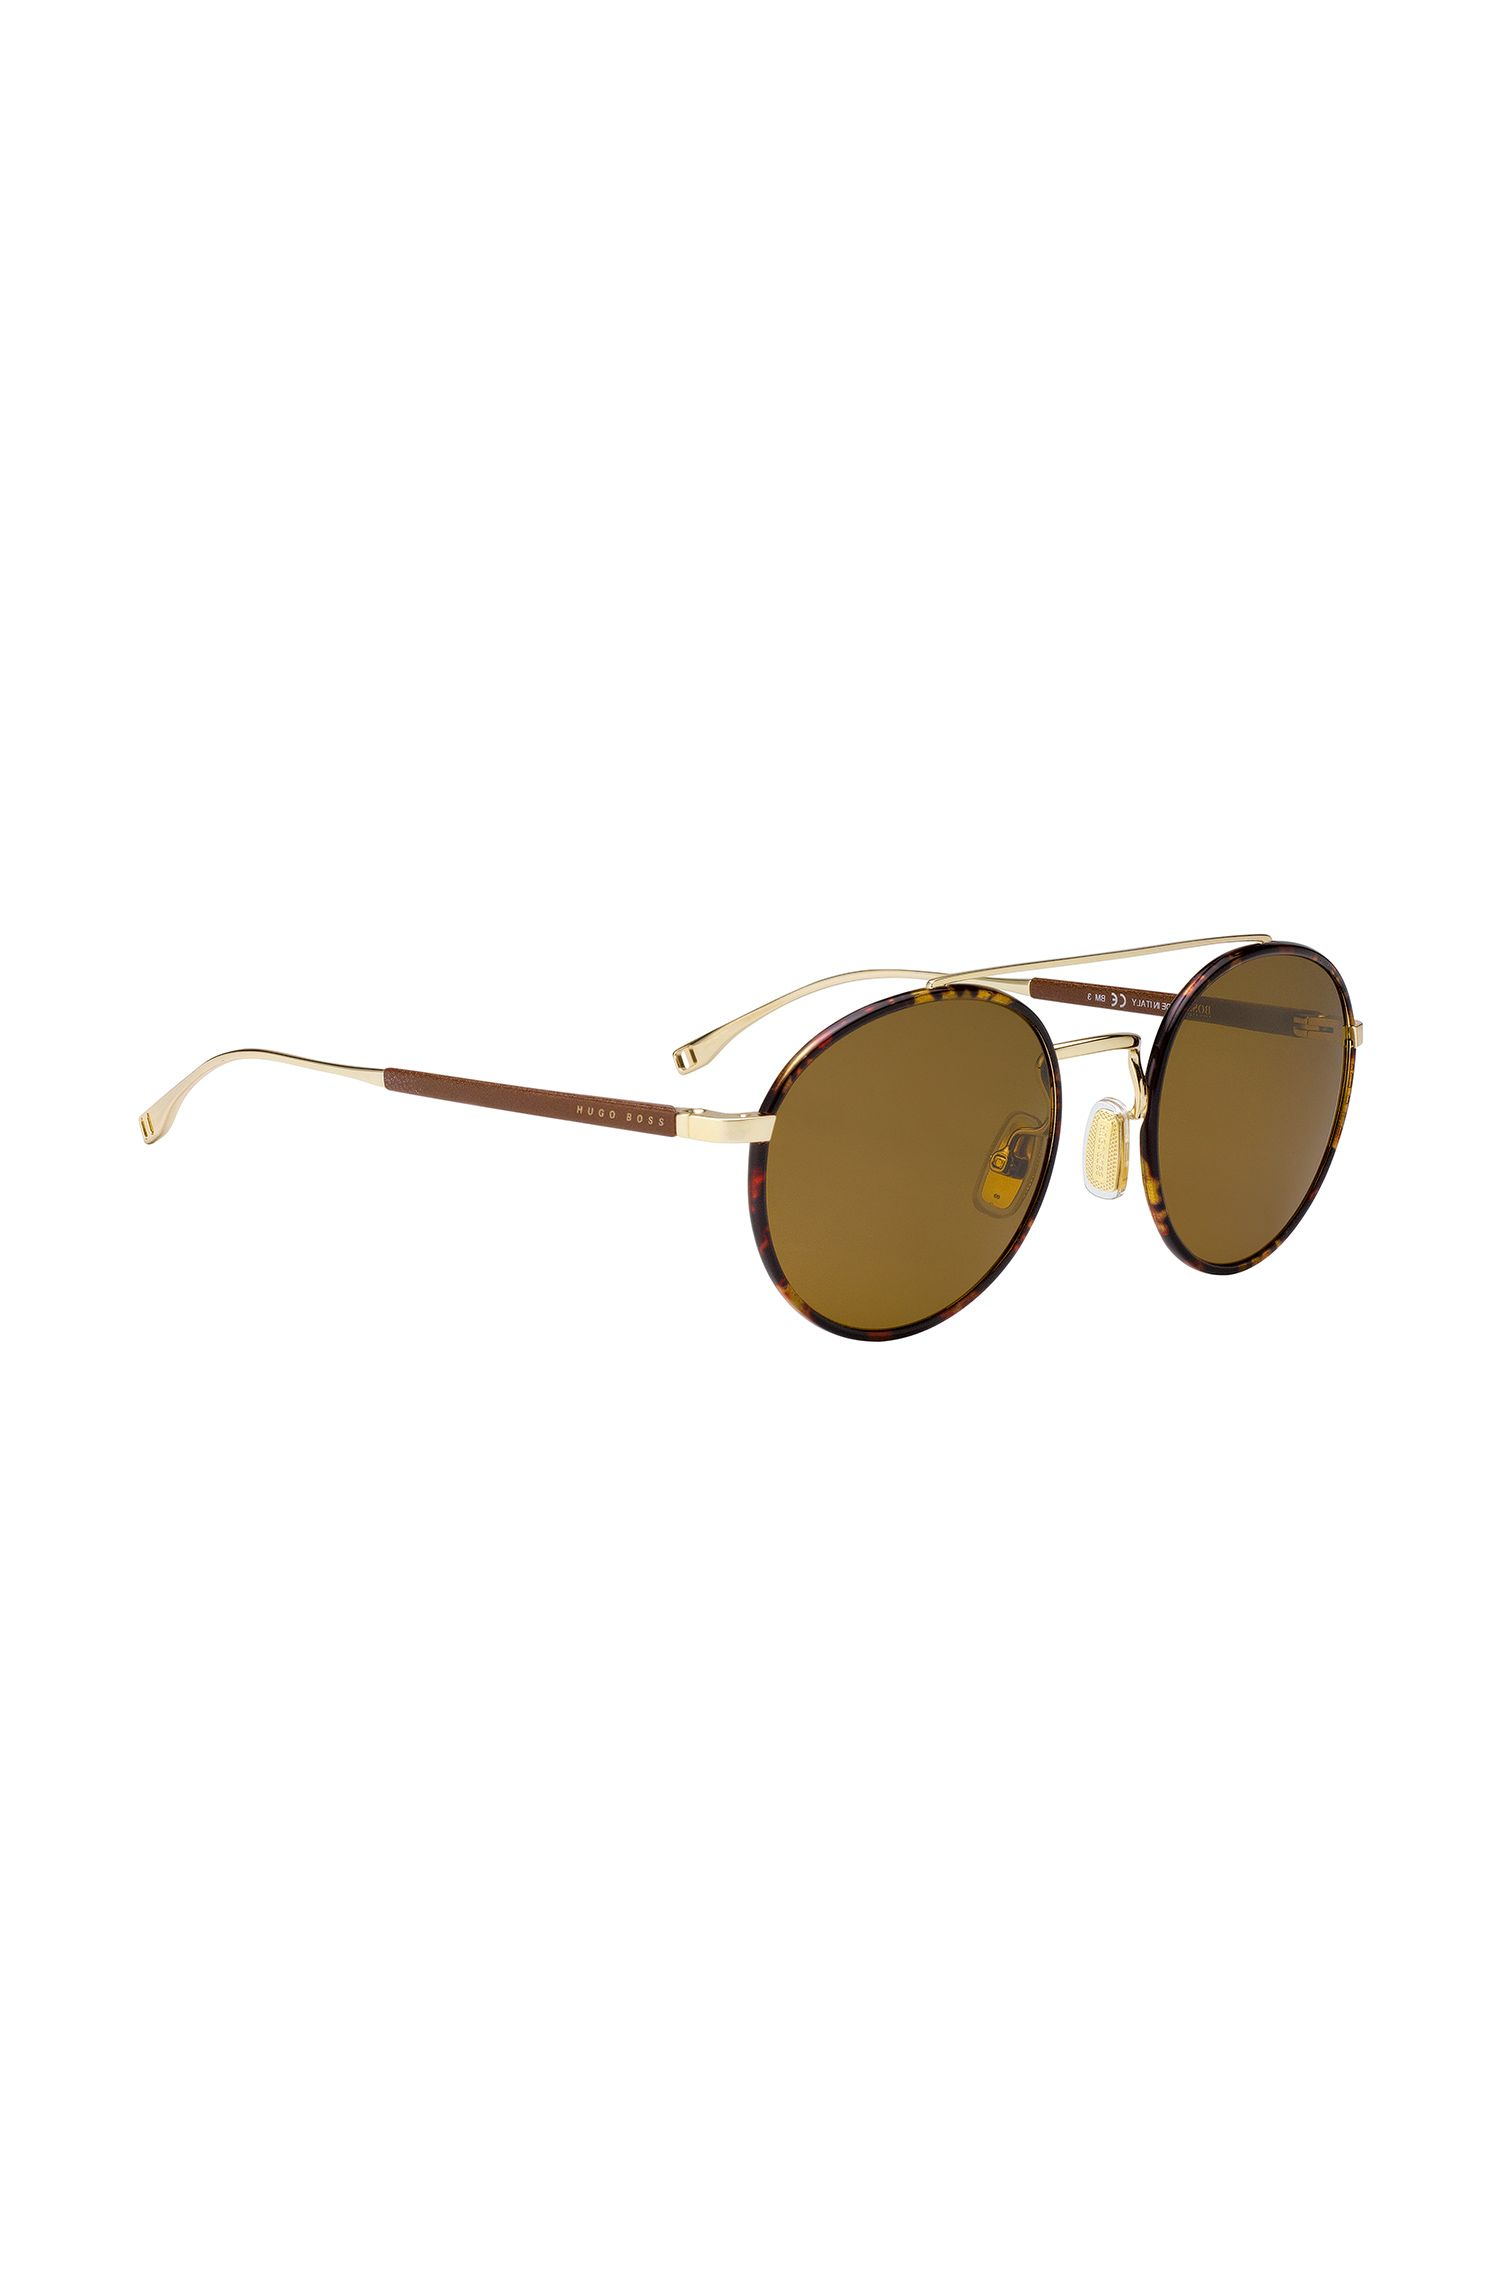 'BOSS 0886S' | Brown Lens Round Leather Wrapped Sunglasses